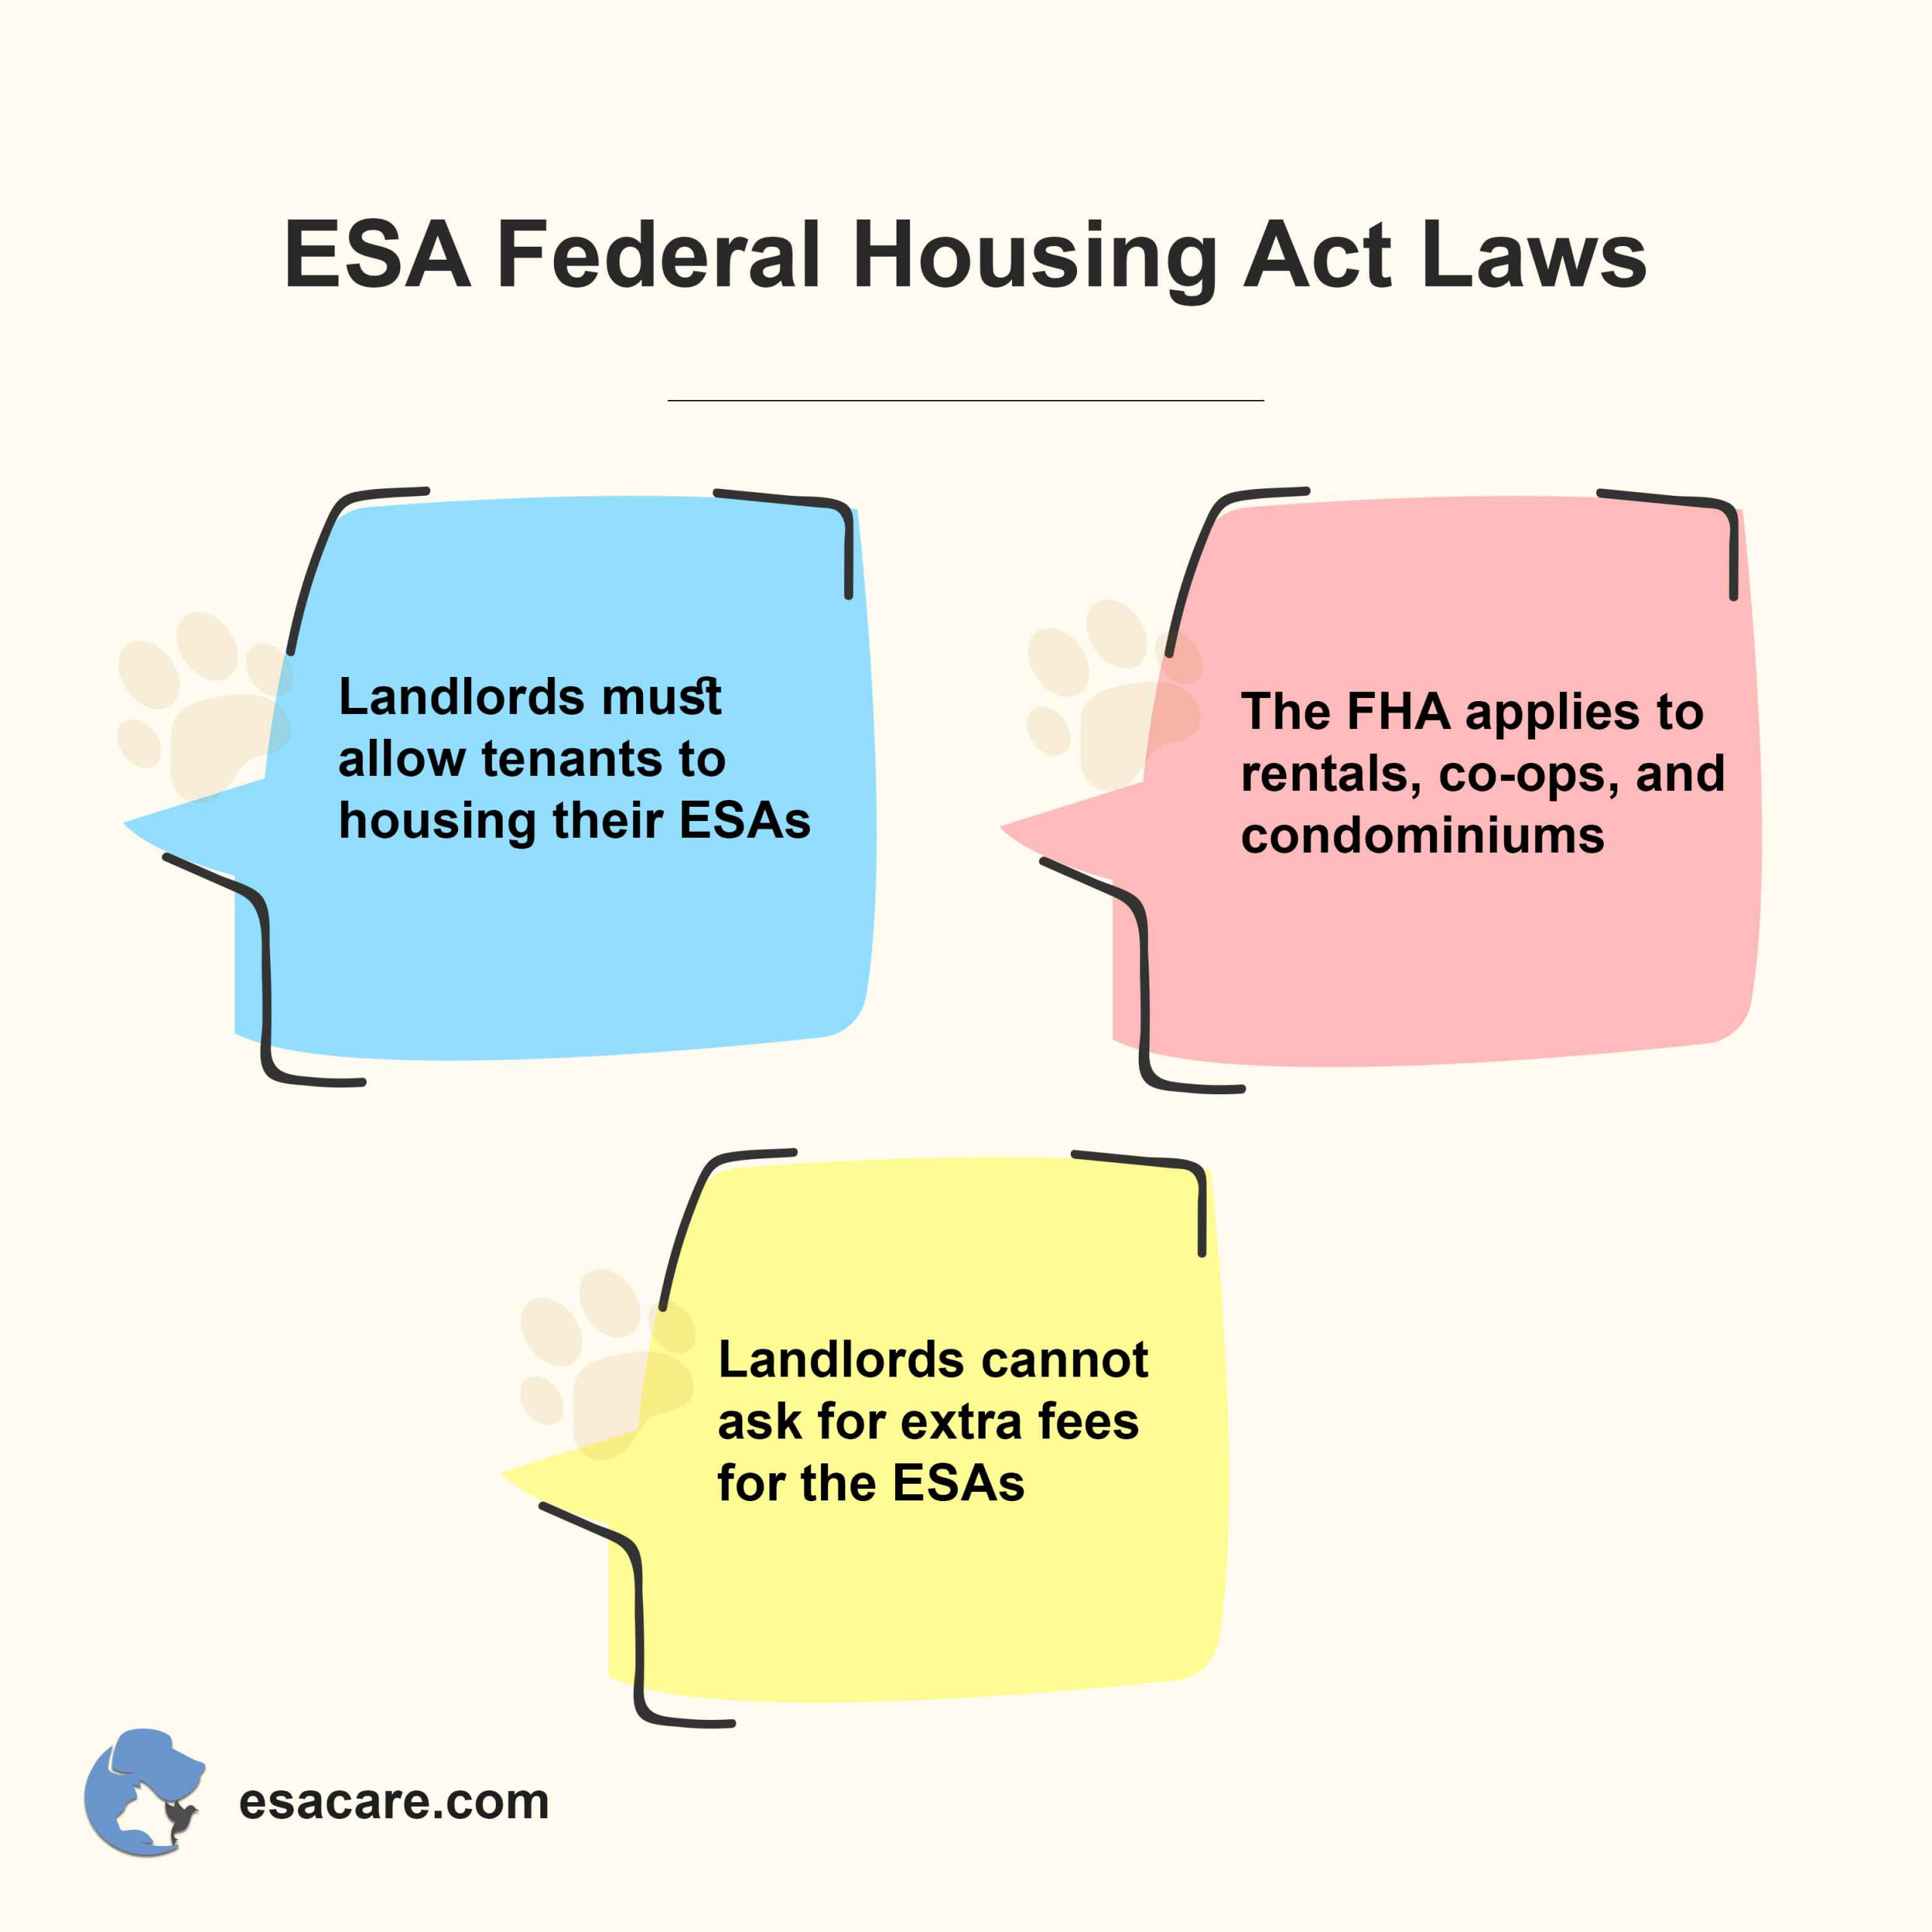 ESA federal housing laws